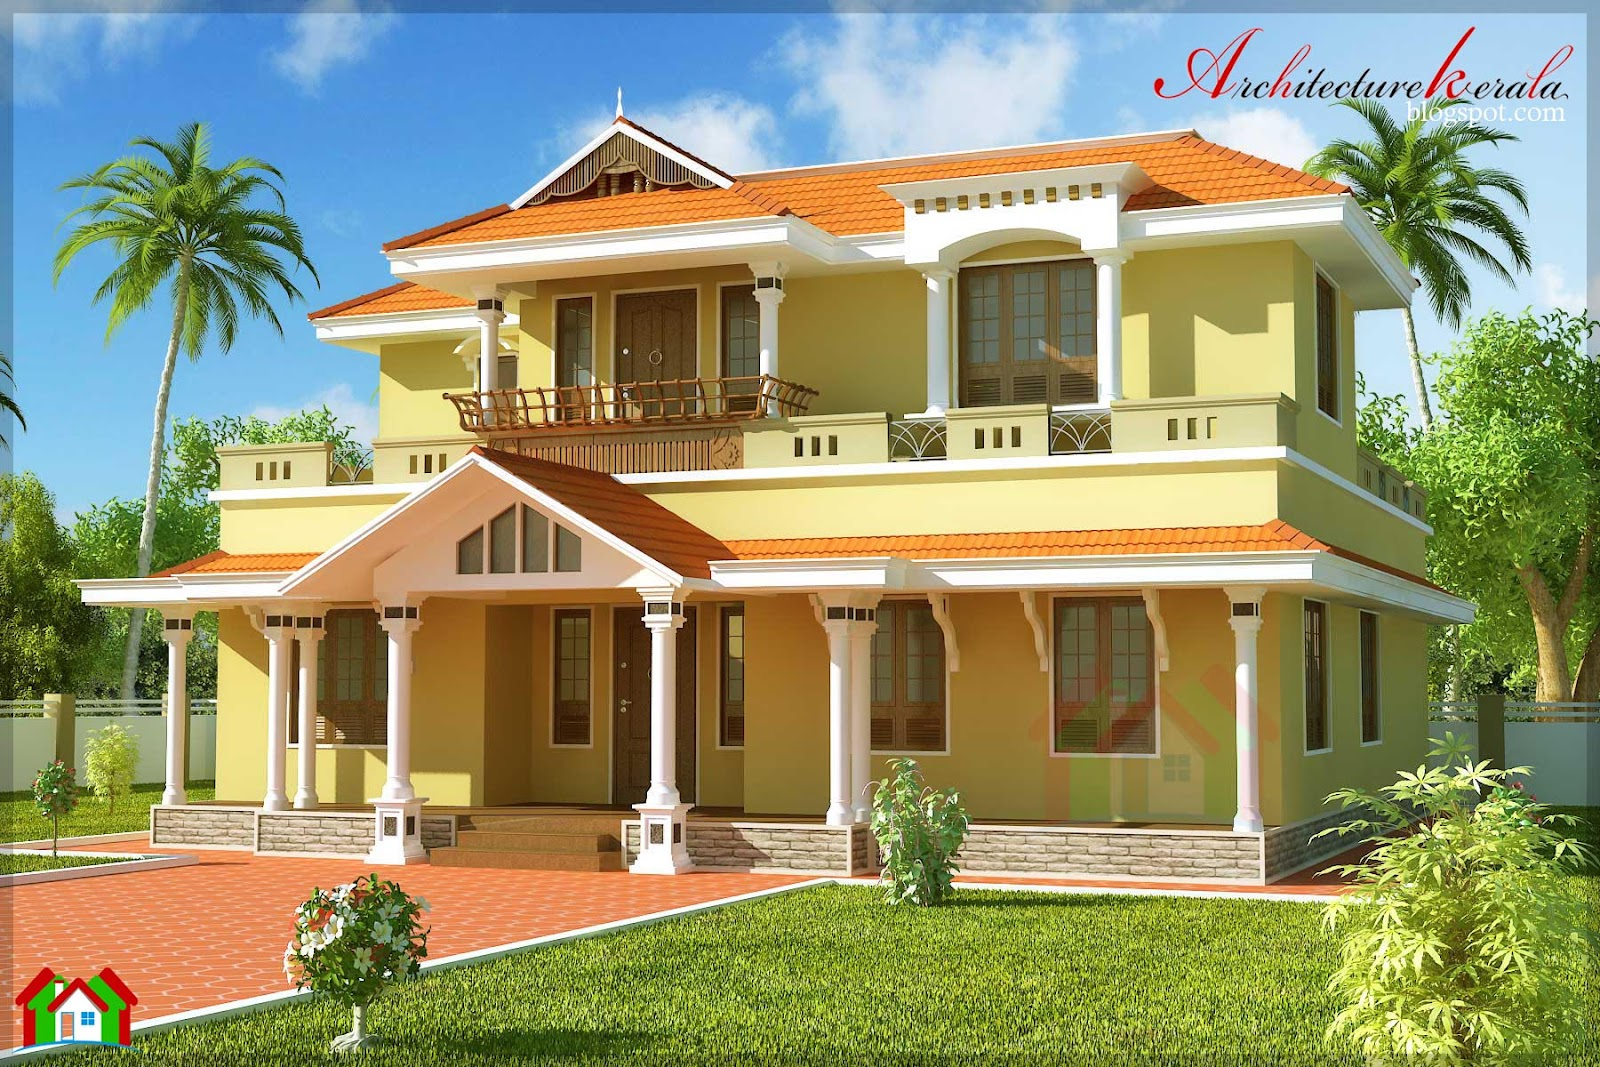 Architecture kerala 2500 square feet traditional style for Kerala traditional home plans with photos